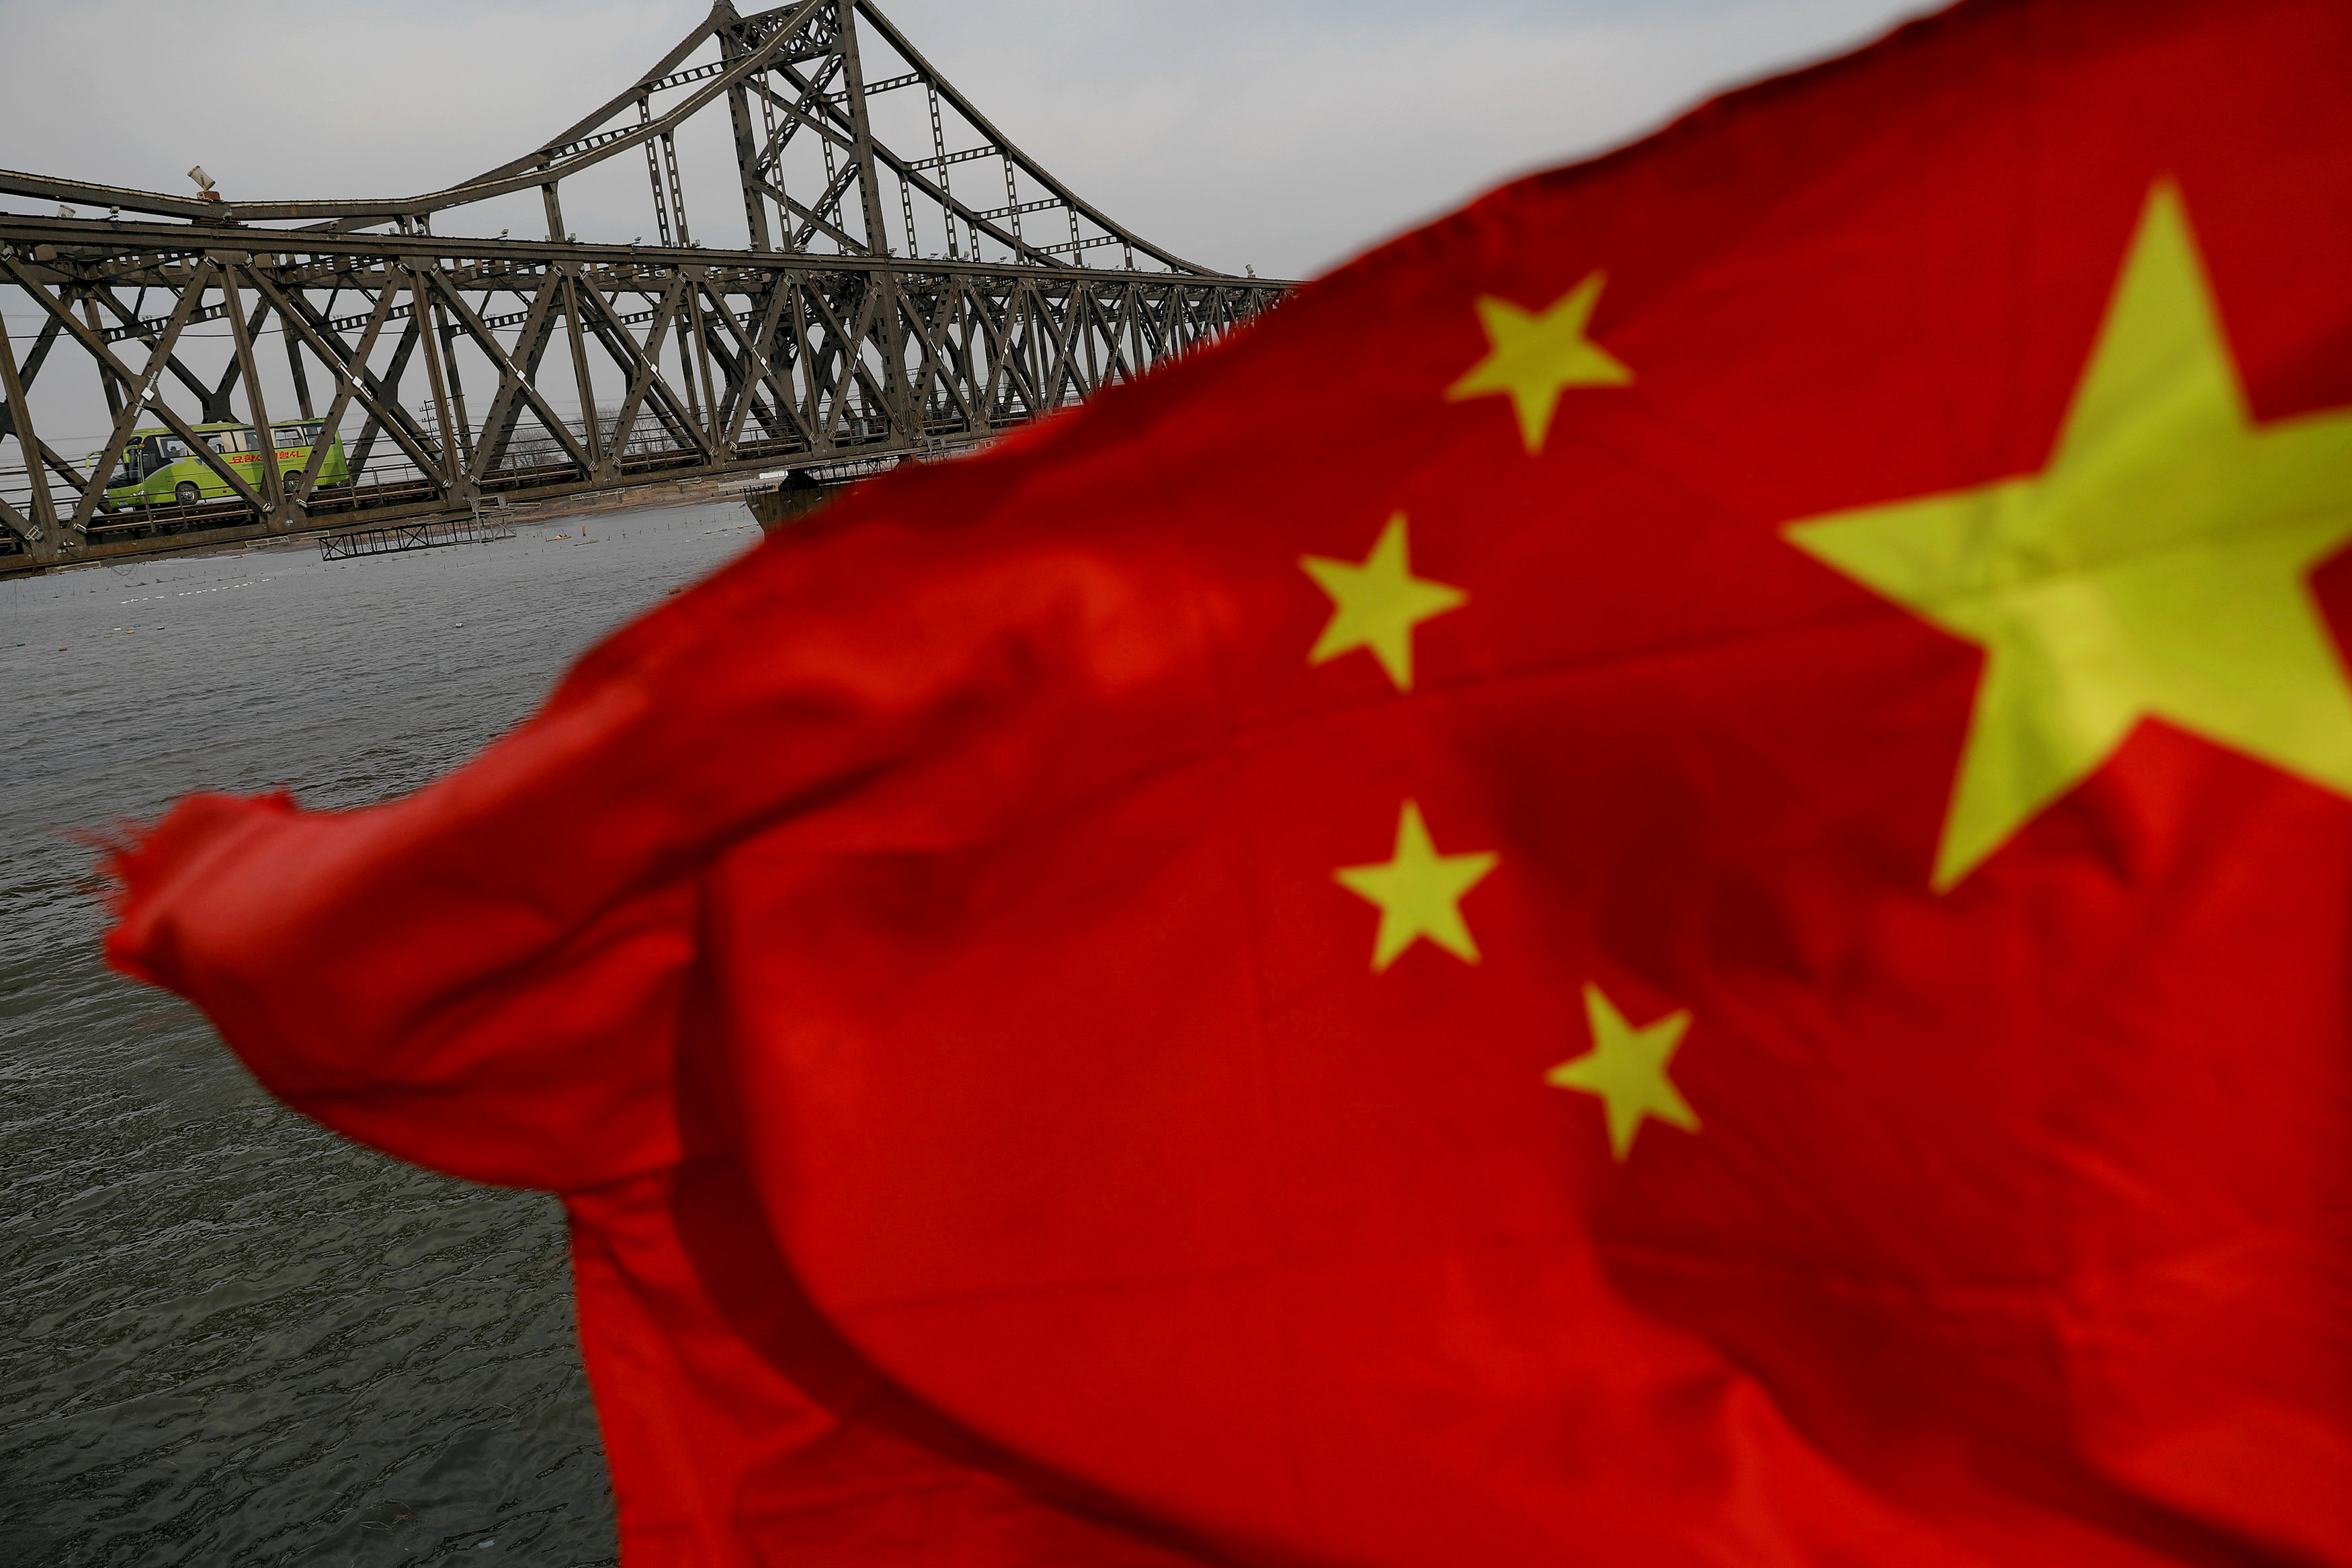 : A Chinese flag is seen in front of the Friendship bridge over the Yalu River connecting the North Korean town of Sinuiju and Dandong in China's Liaoning Province on April 1, 2017.